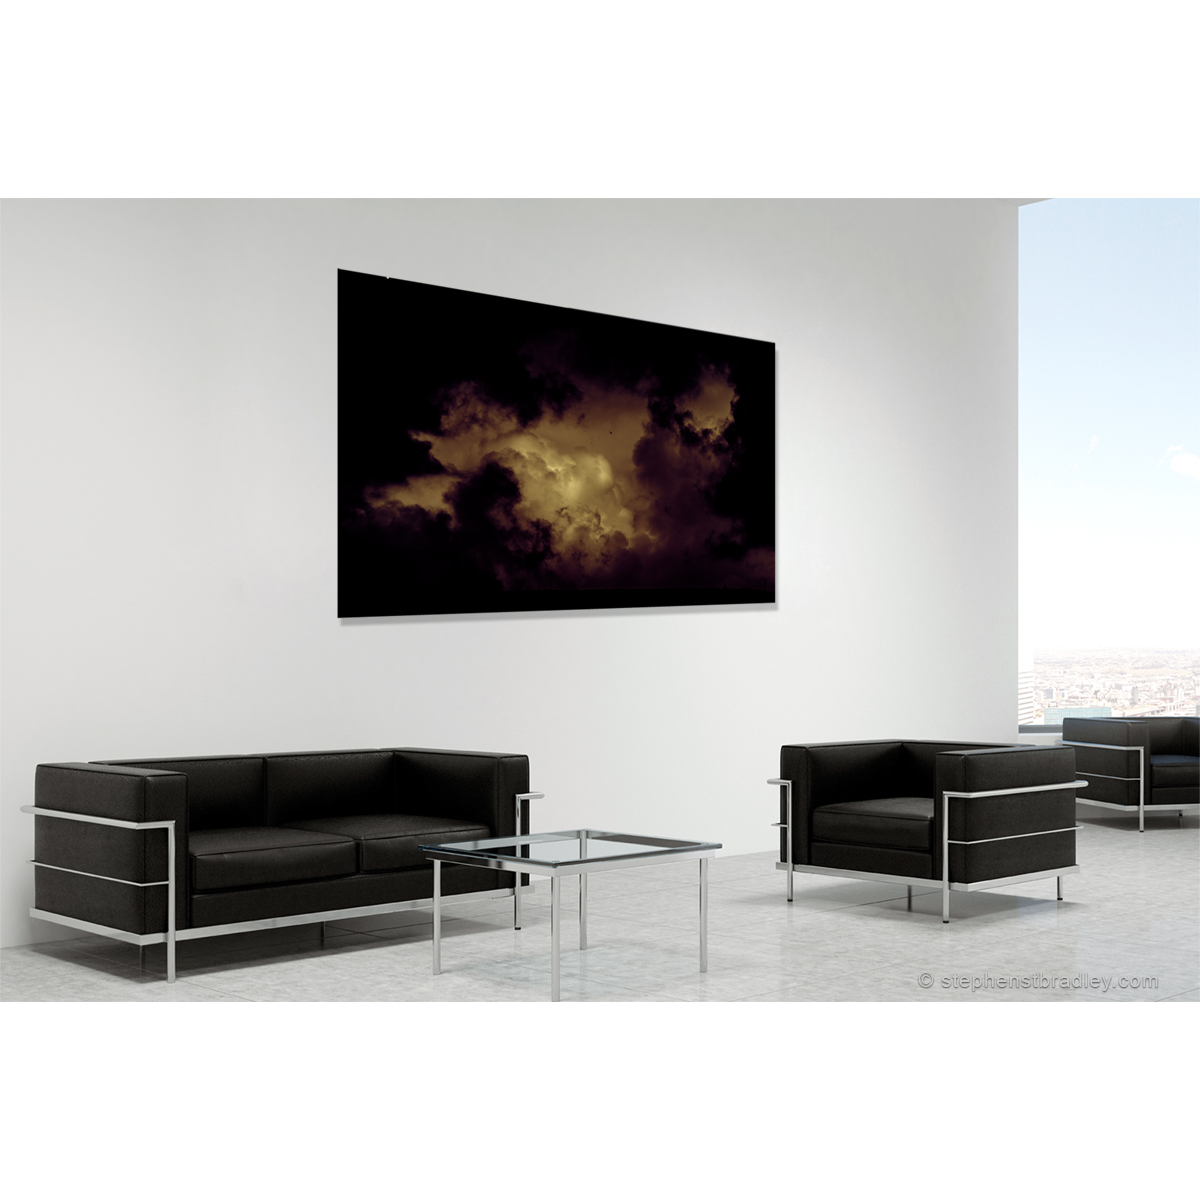 Wonderworld. Fine art landscape photo of Cave Hill Ireland in room setting for sale - Stephen S T Bradley